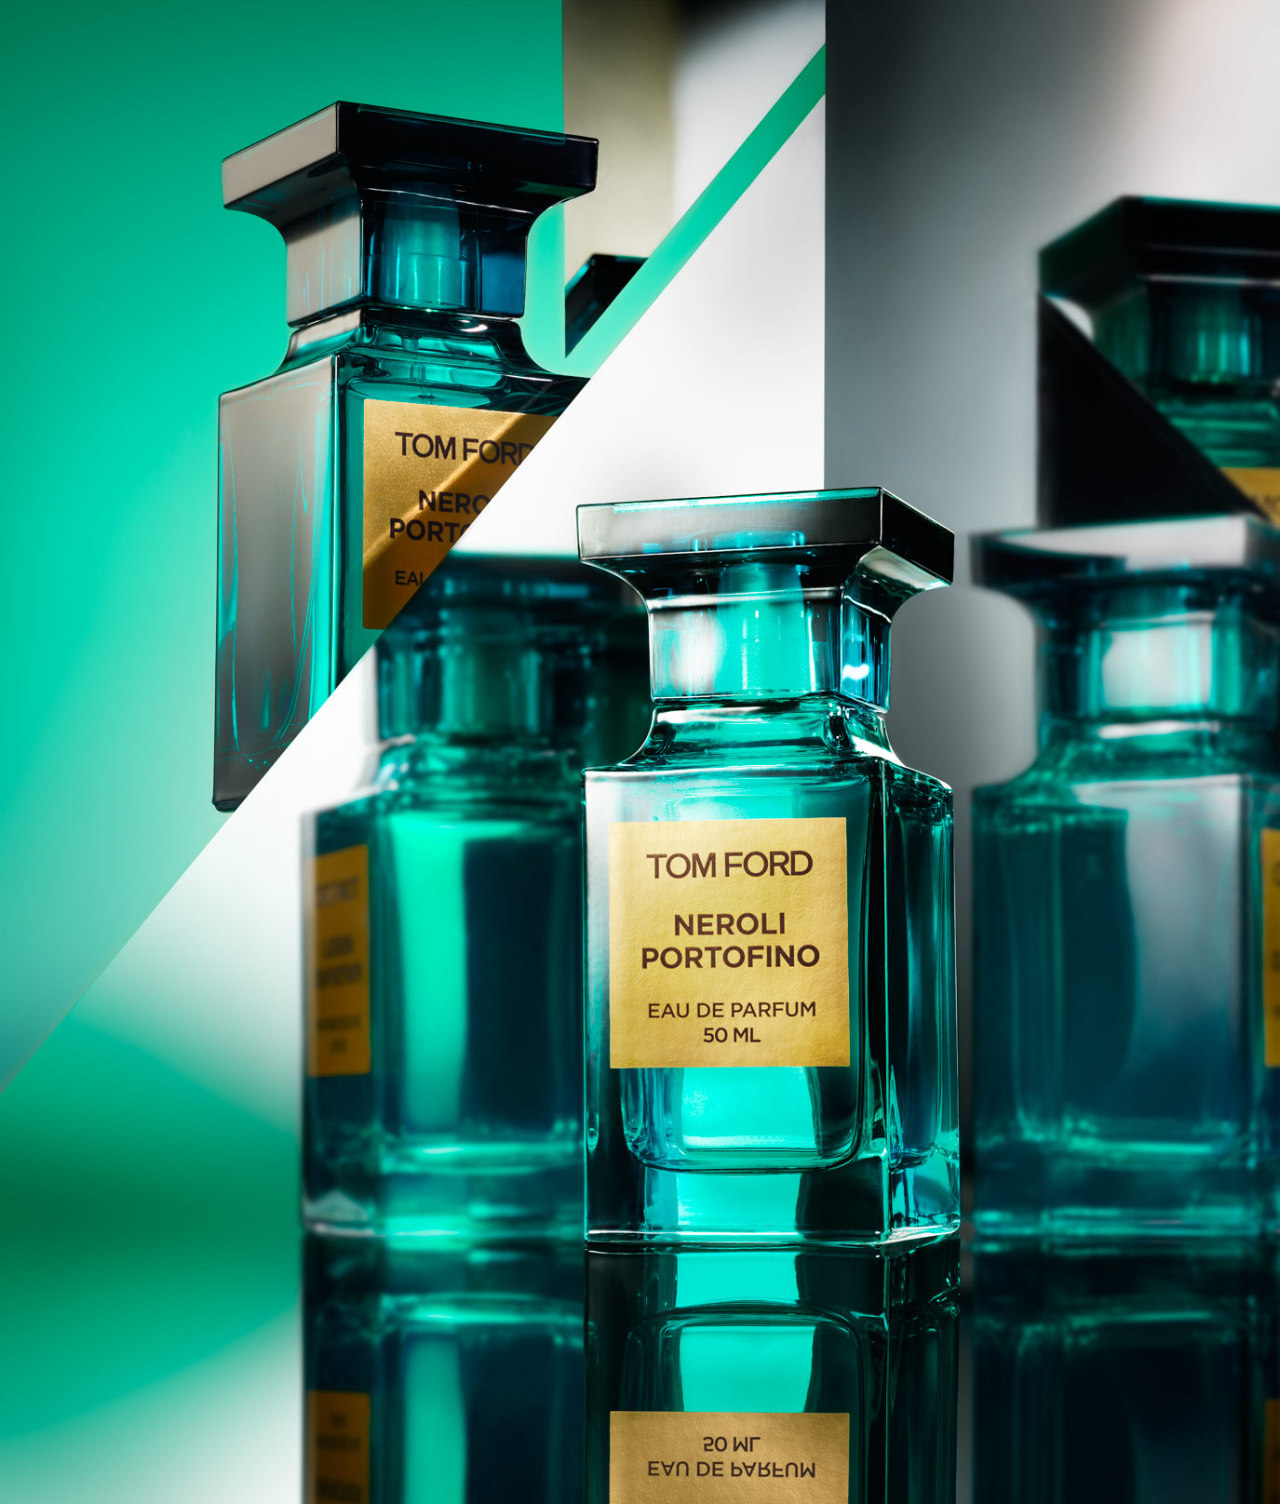 "SEPHORA HOT NOW: VOLUME 3 TOM FORD NEROLI PORTOFINO Sephora Head Merchant Margarita Arriagada on the power of sonic cleansing. THE TOM FORD NEROLI PORTOFINO: ""This is going to sound a little strange, but this fragrance feels emerald green. It absolutely captures the Italian Riviera. I really had to immerse myself in the color, so I really embraced why this color was selected and why it's important and this sense of renewal that this color brings and this richness and the luxury aspect of what emerald means. When I picked the scent it's because I could feel that. I know it may be a stretch for everyone else but I could really feel the color in the scent."" SHOP TOM FORD AT SEPHORA ▸ MORE ON MARGARITA AND THE PANTONE COLOR OF THE YEAR ▸ FIND OUT ABOUT THE OTHER PRODUCTS IN OUR EMERALD SEPHORA HOT NOW ▸"